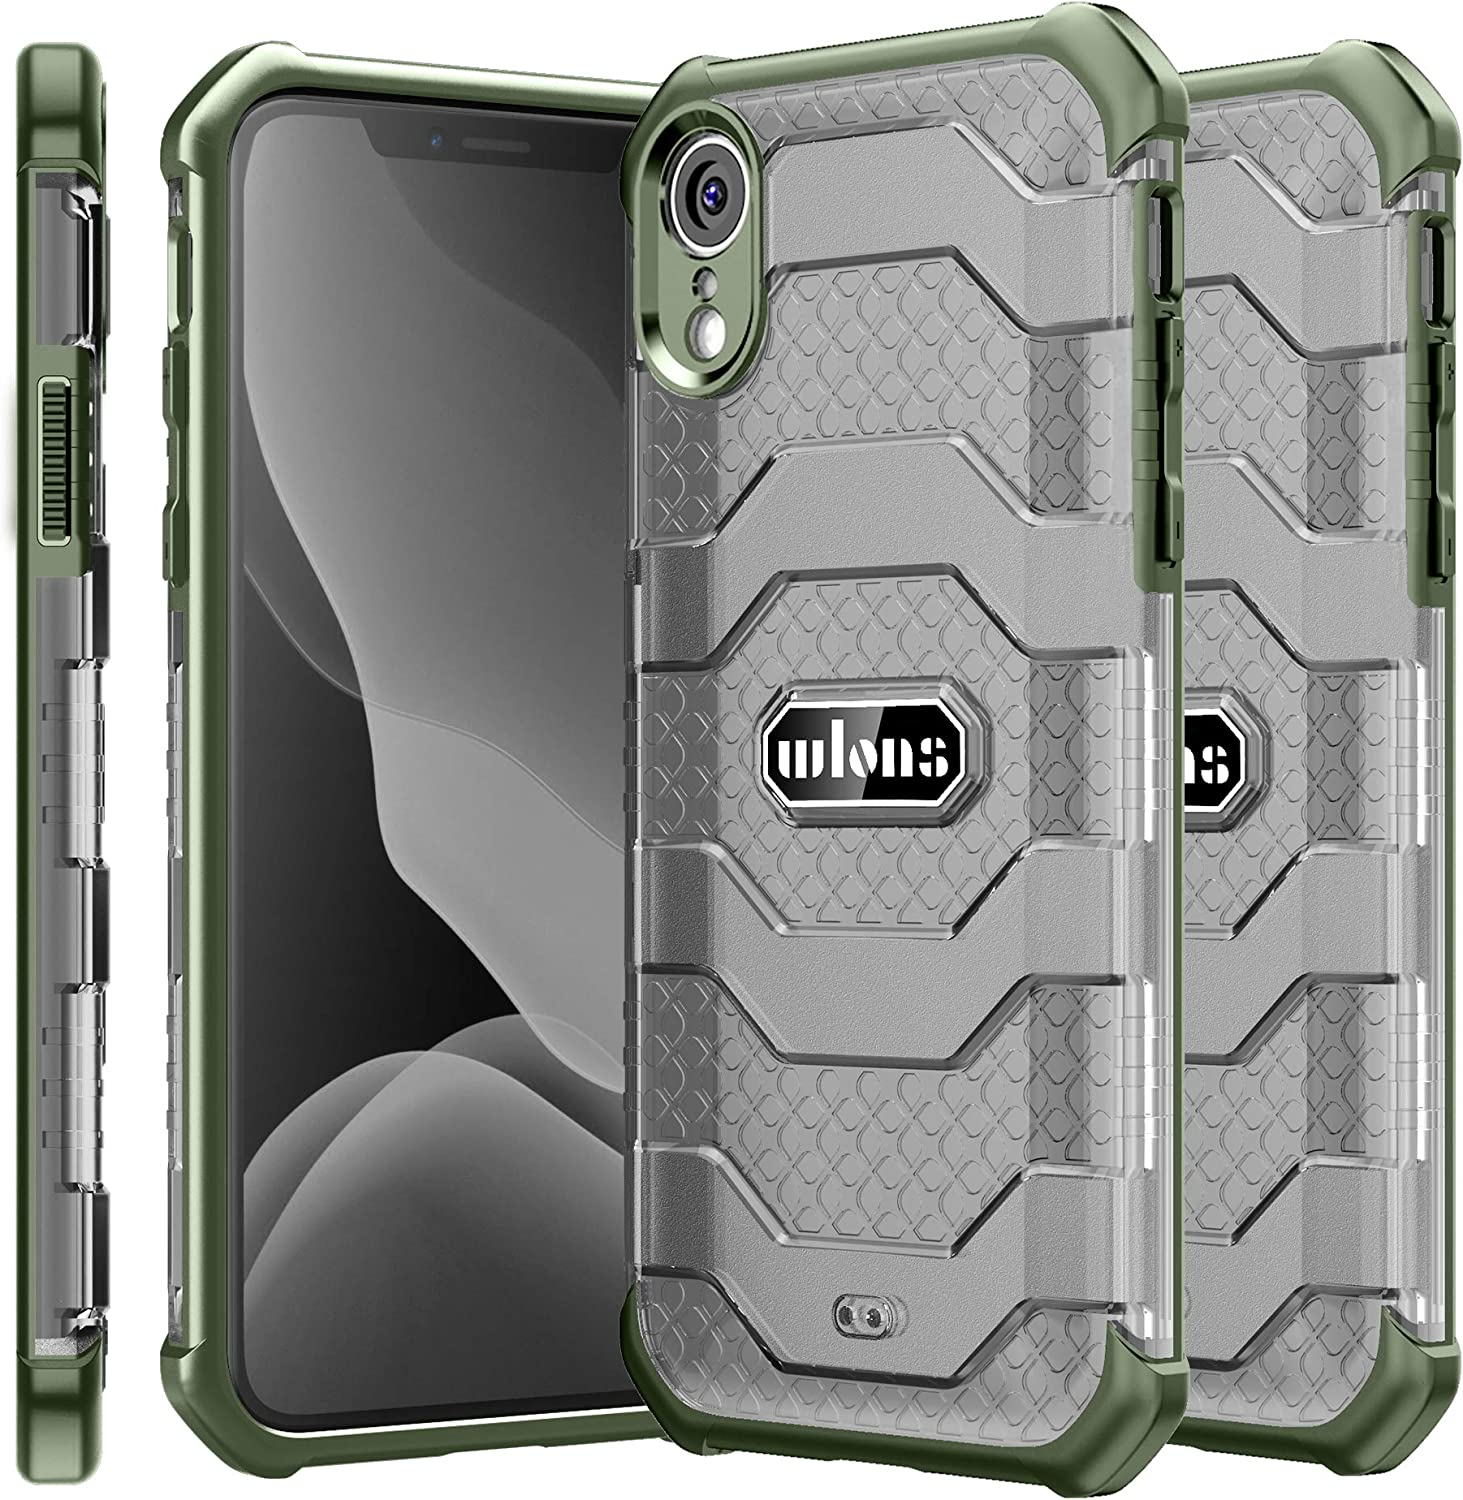 Wlons Designed Phone Case Shockproof Case with TPU Soft Bumper for iPhone XR Military Drop Tested iPhone Case (Light Green, 6.1 XR)